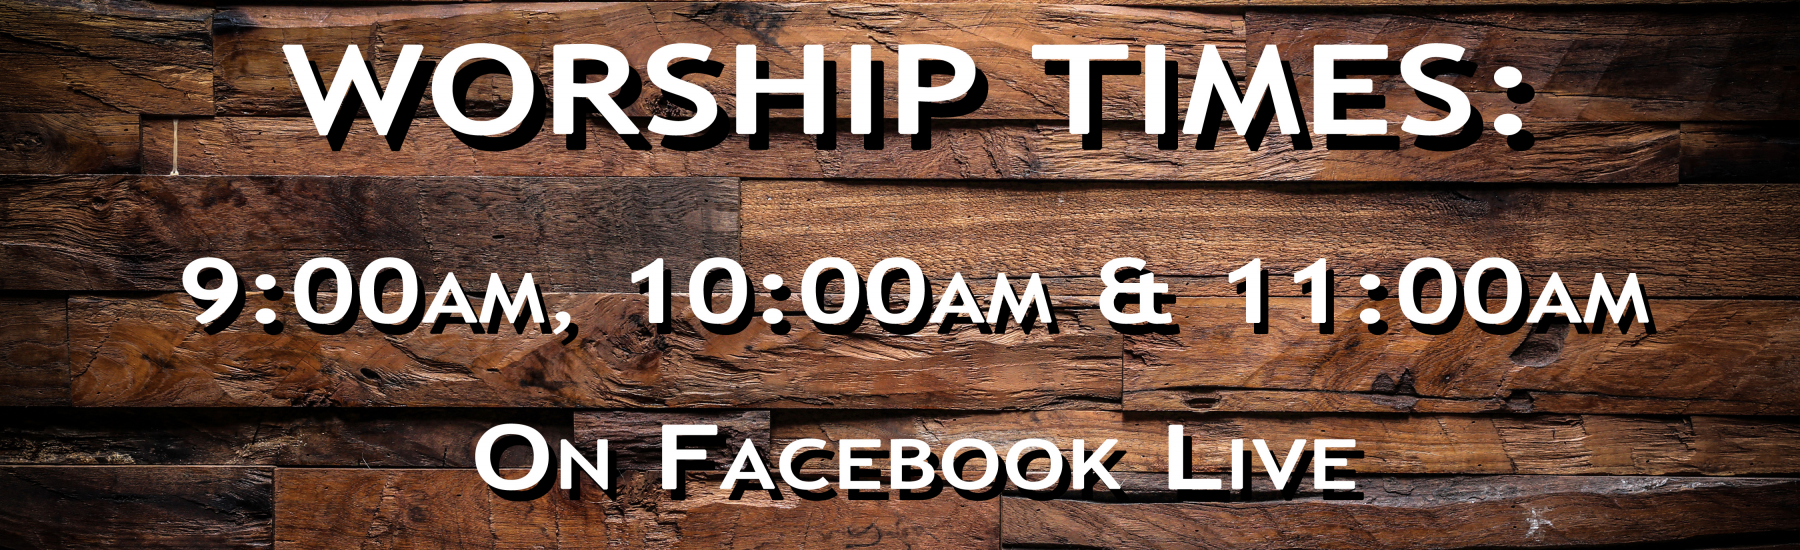 Sunday Online Worship Times: